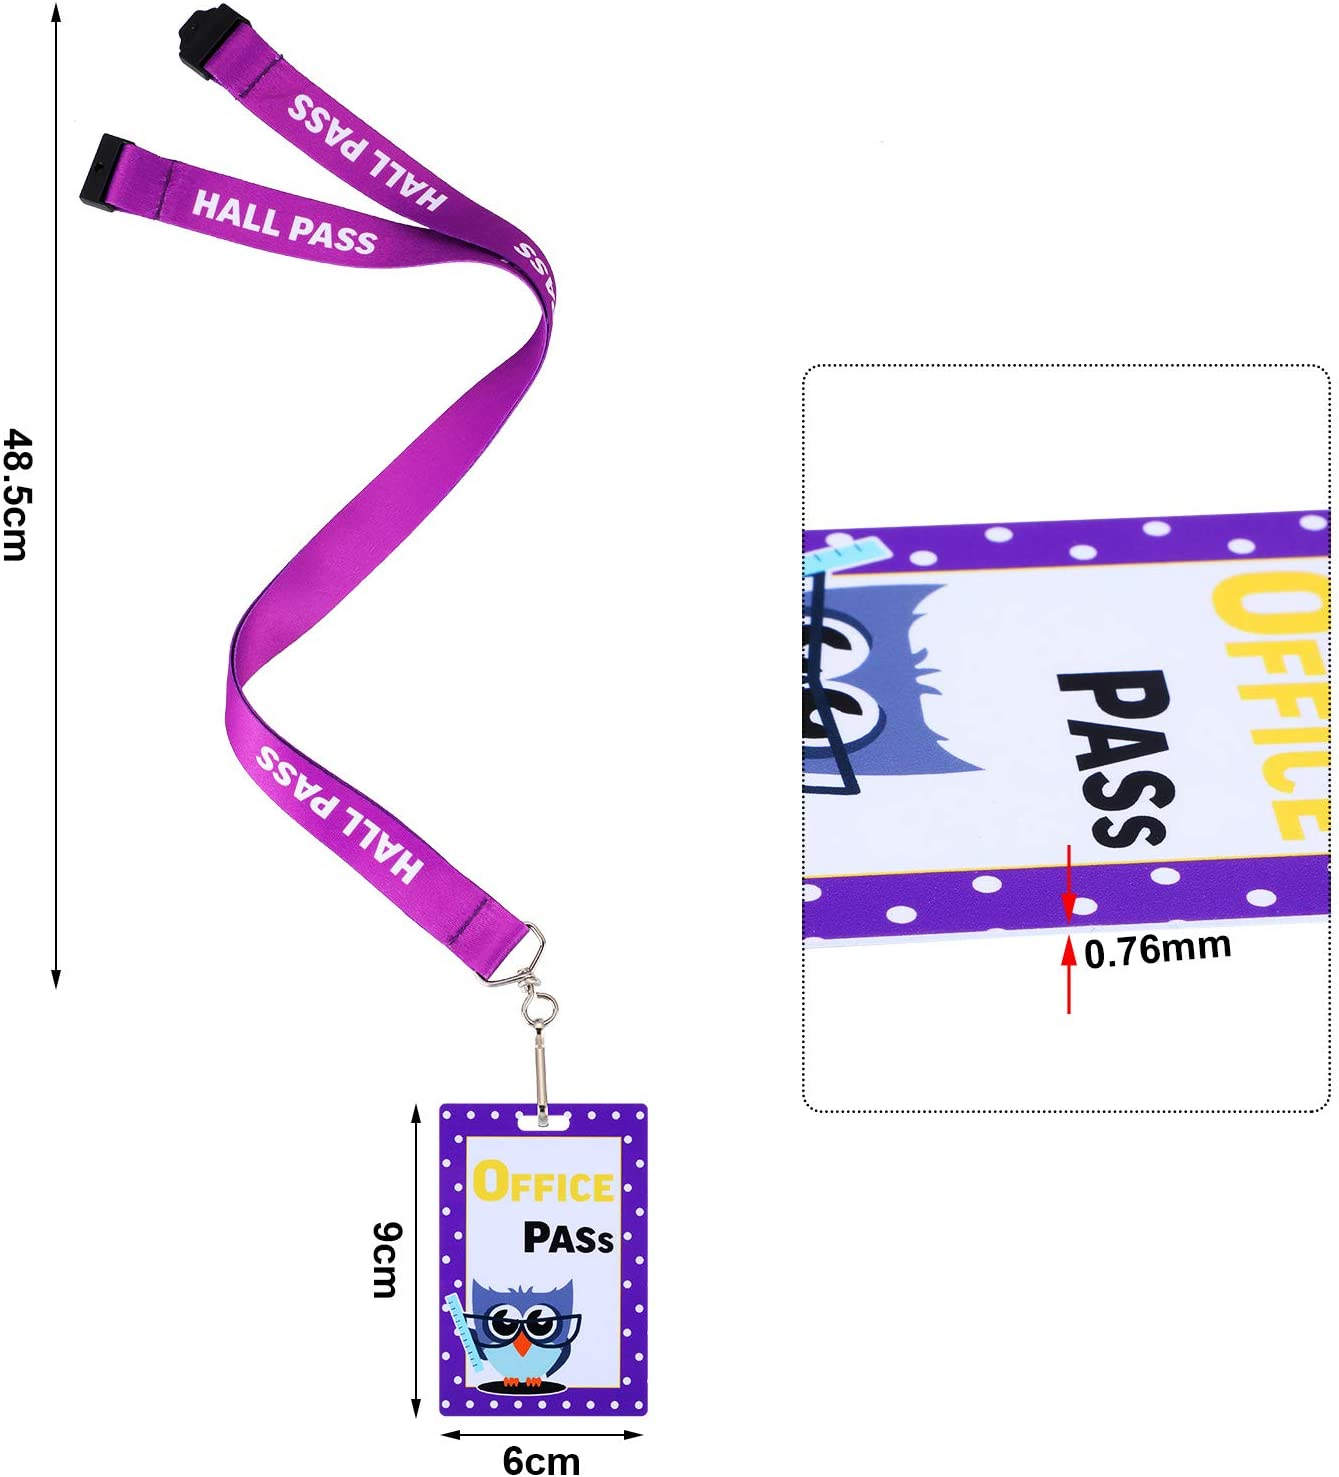 Classroom Supplies Library Office 12 Pieces Hall Pass Lanyards Set Owl School Passes Colorful Office Pass for Hall School Nurse